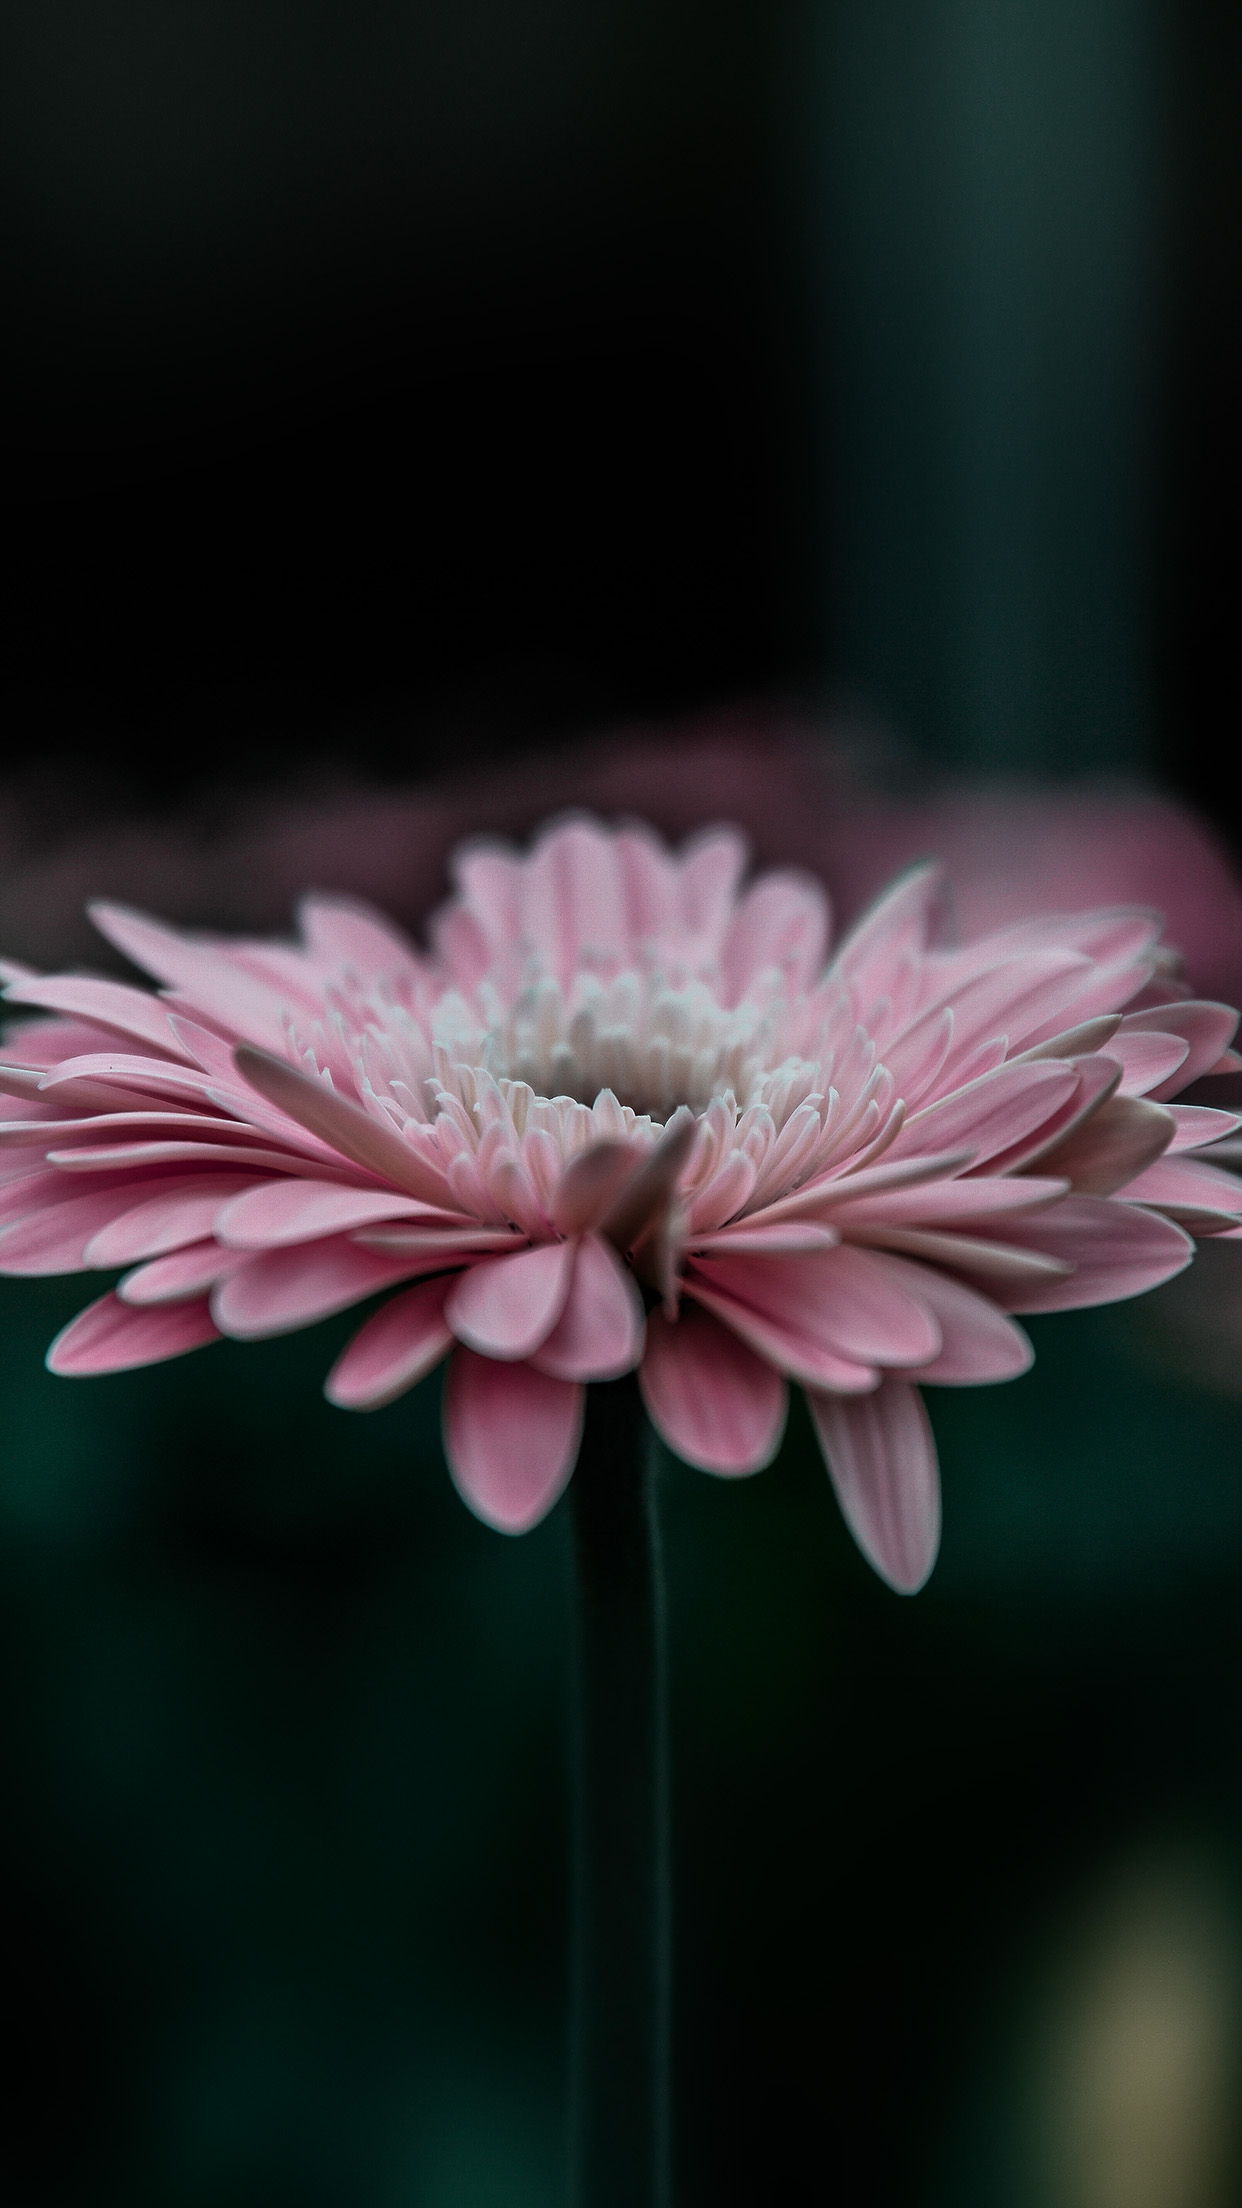 Flower Pink Calm Nature Bokeh Android wallpaper